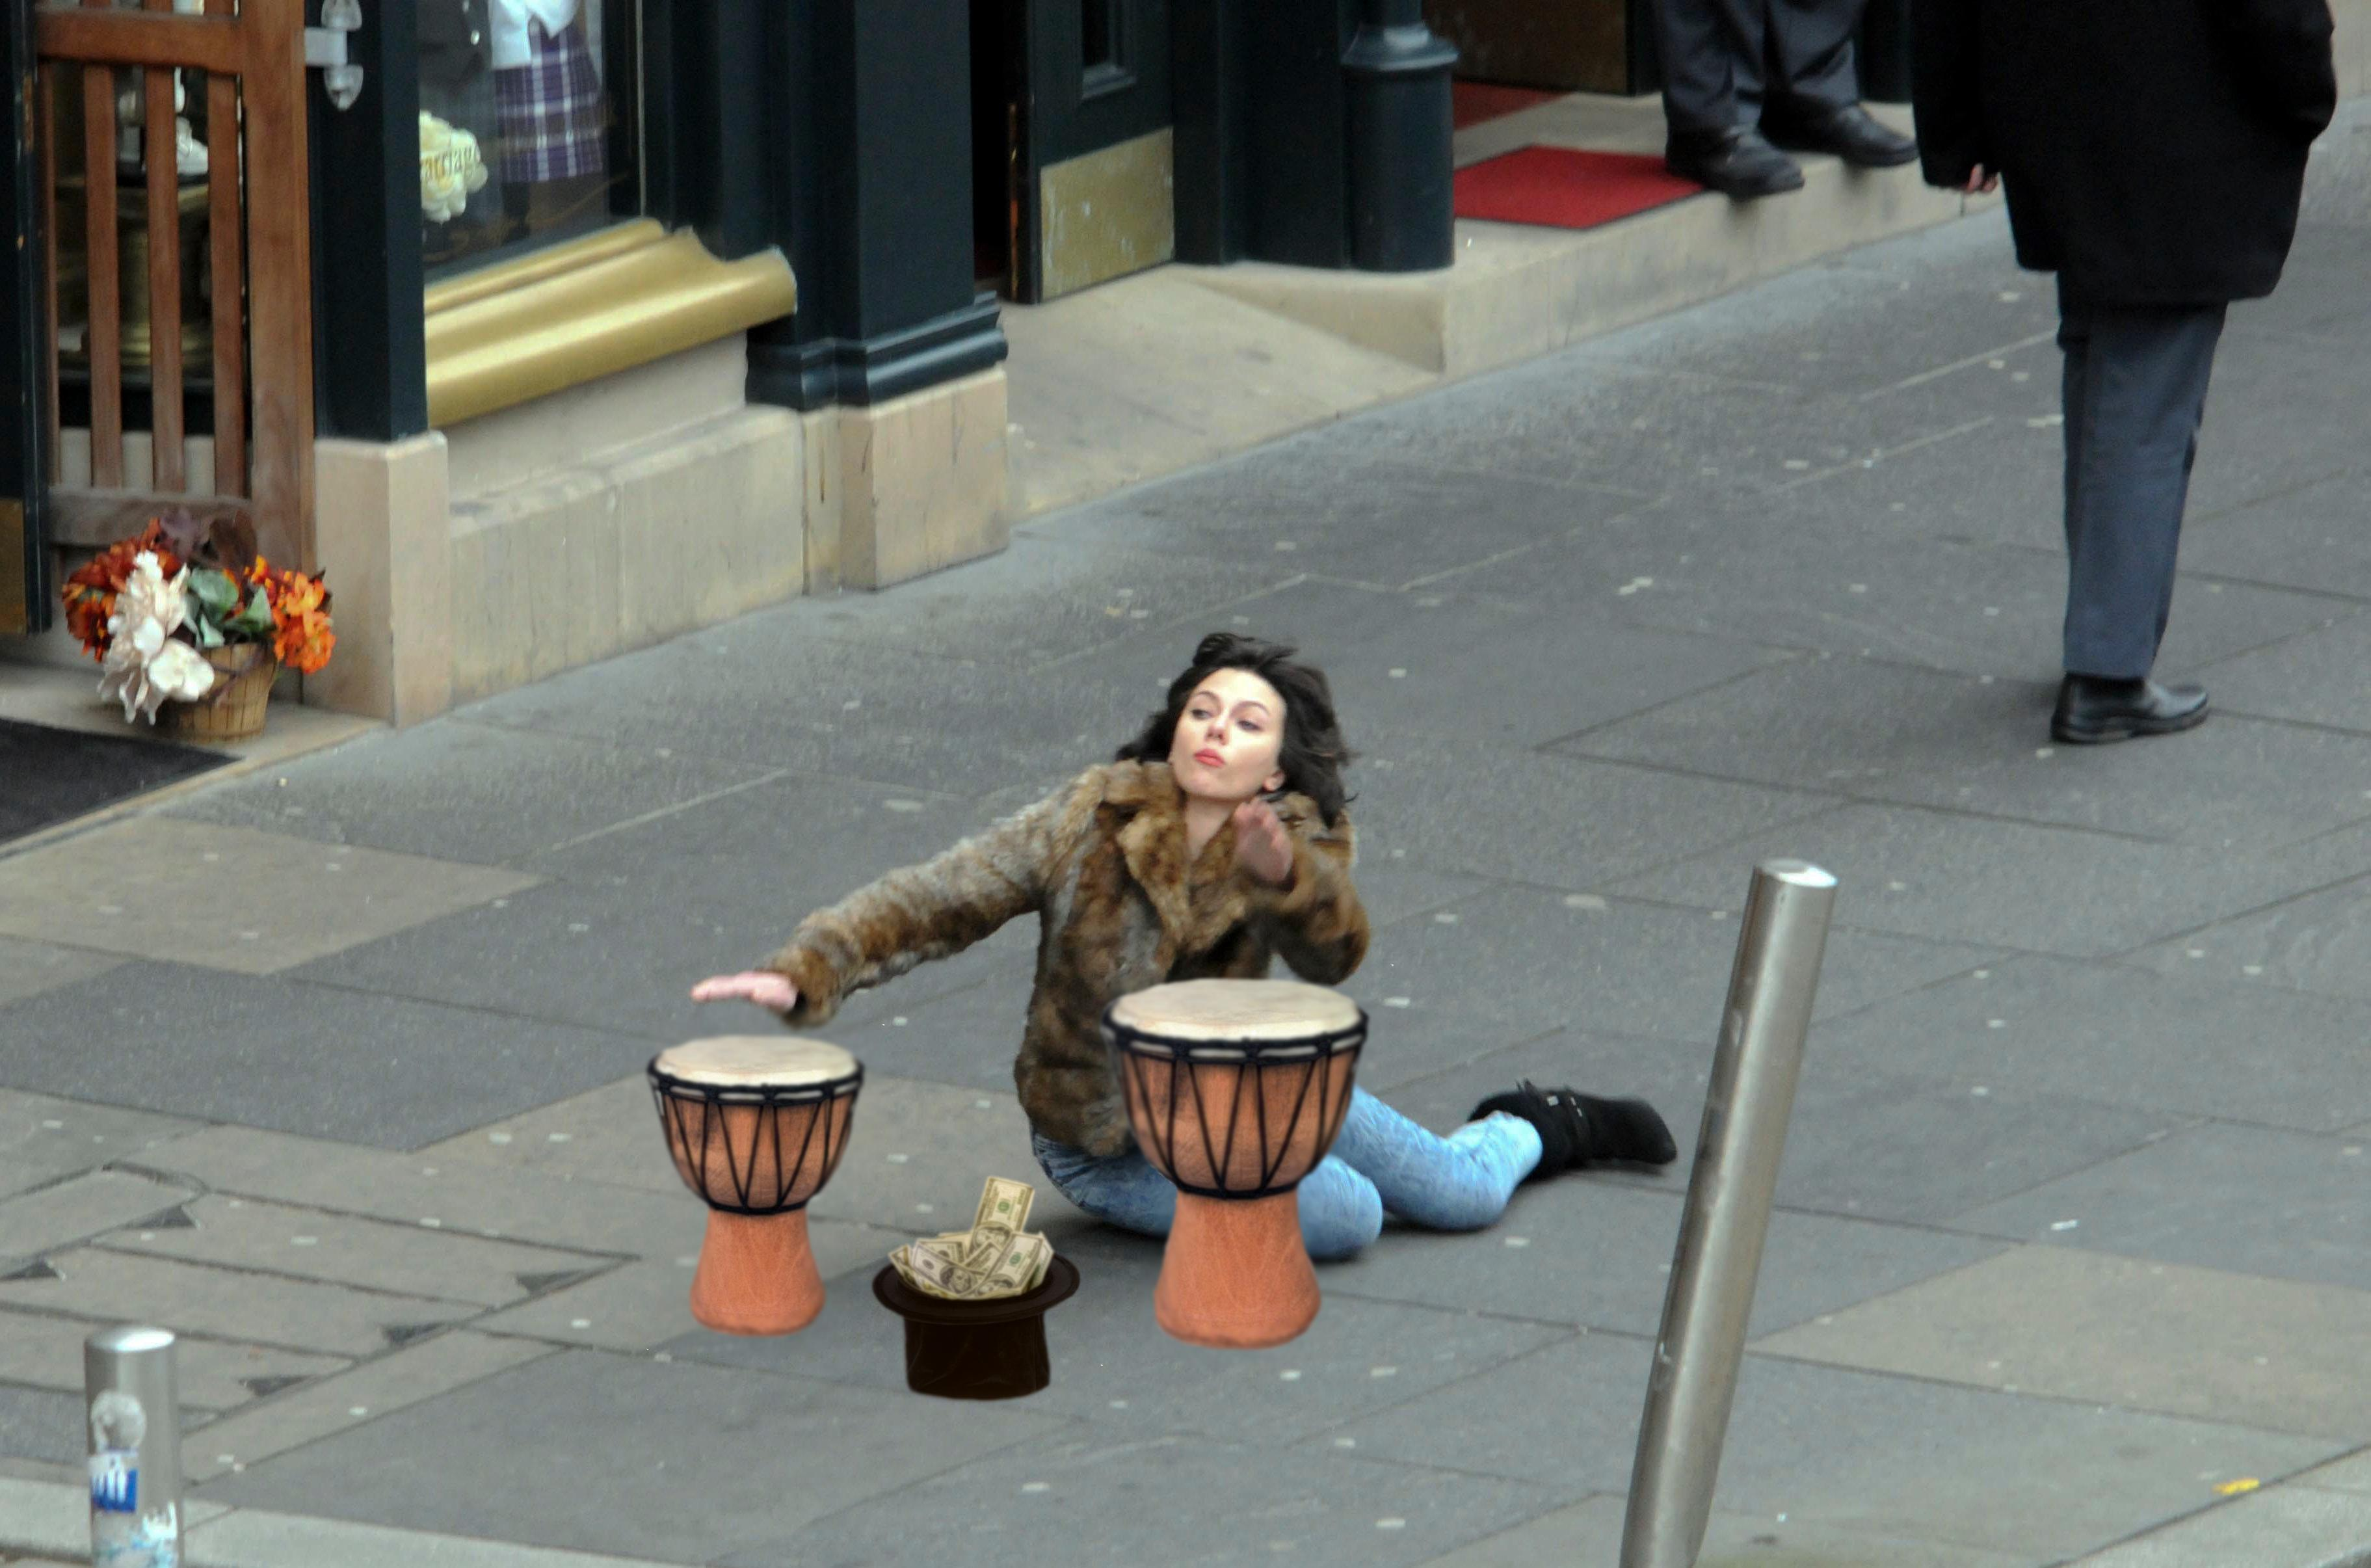 Scarlett Johansson tripped and fell on the street. Naturally, it's now a meme. A GREAT meme.